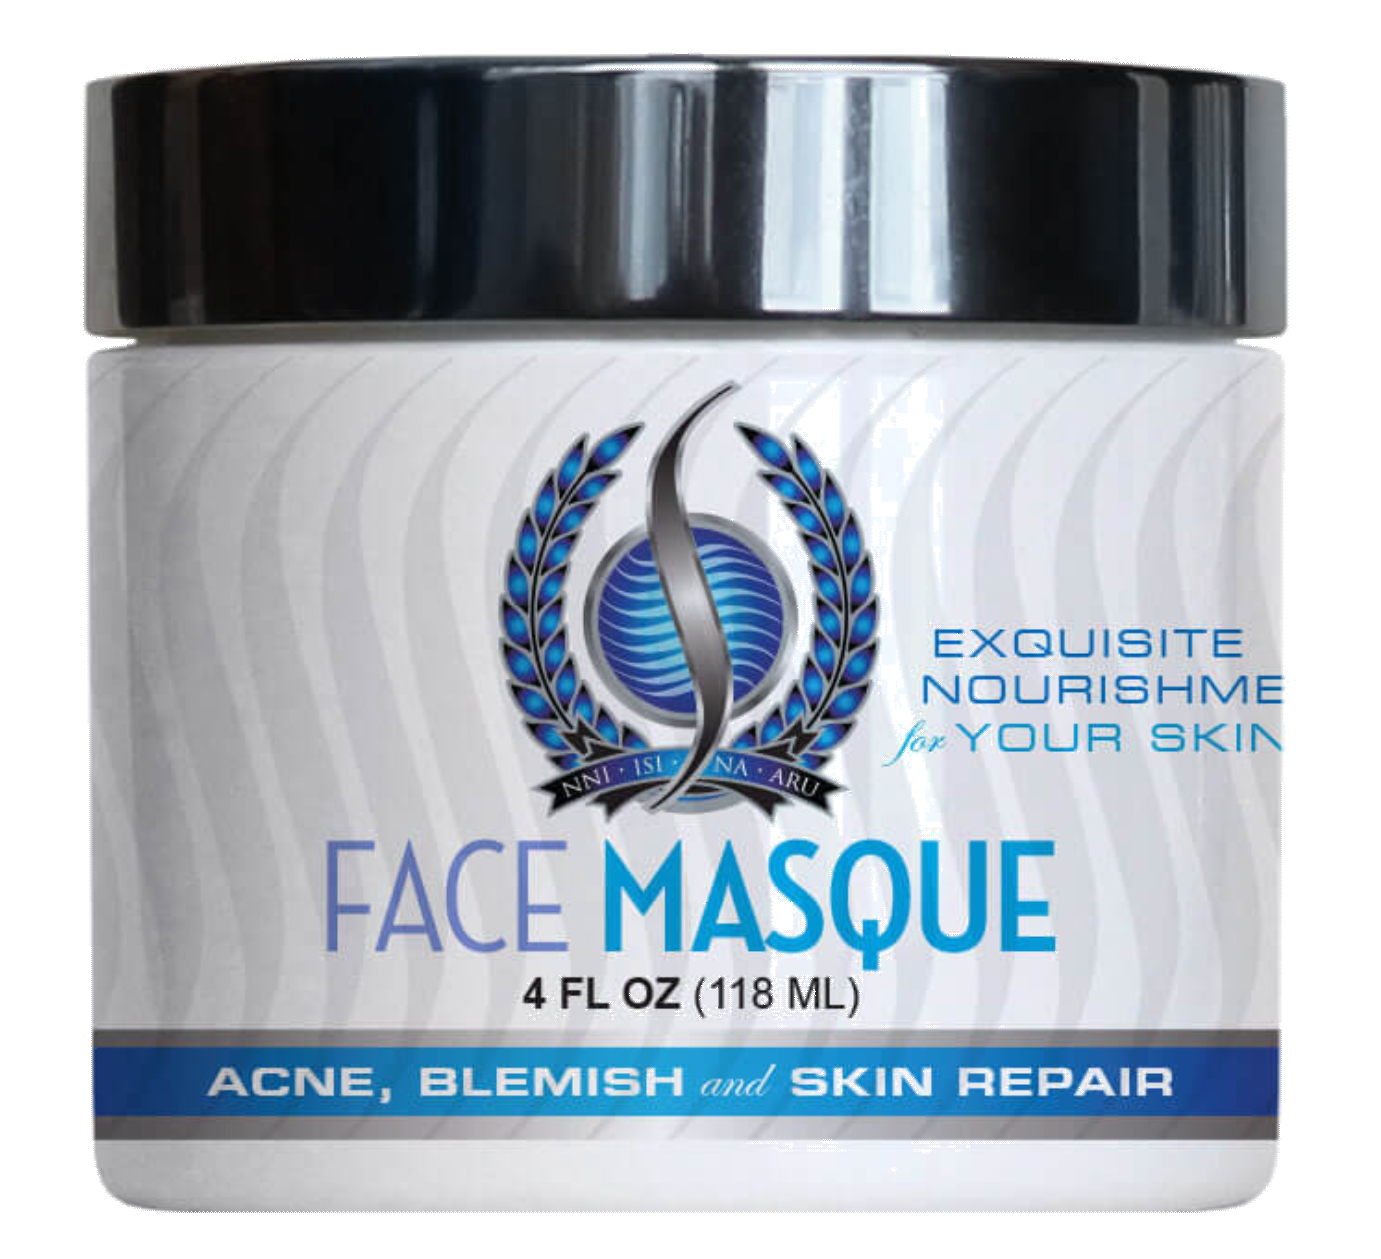 Face masque - latcosmic| winter dryness